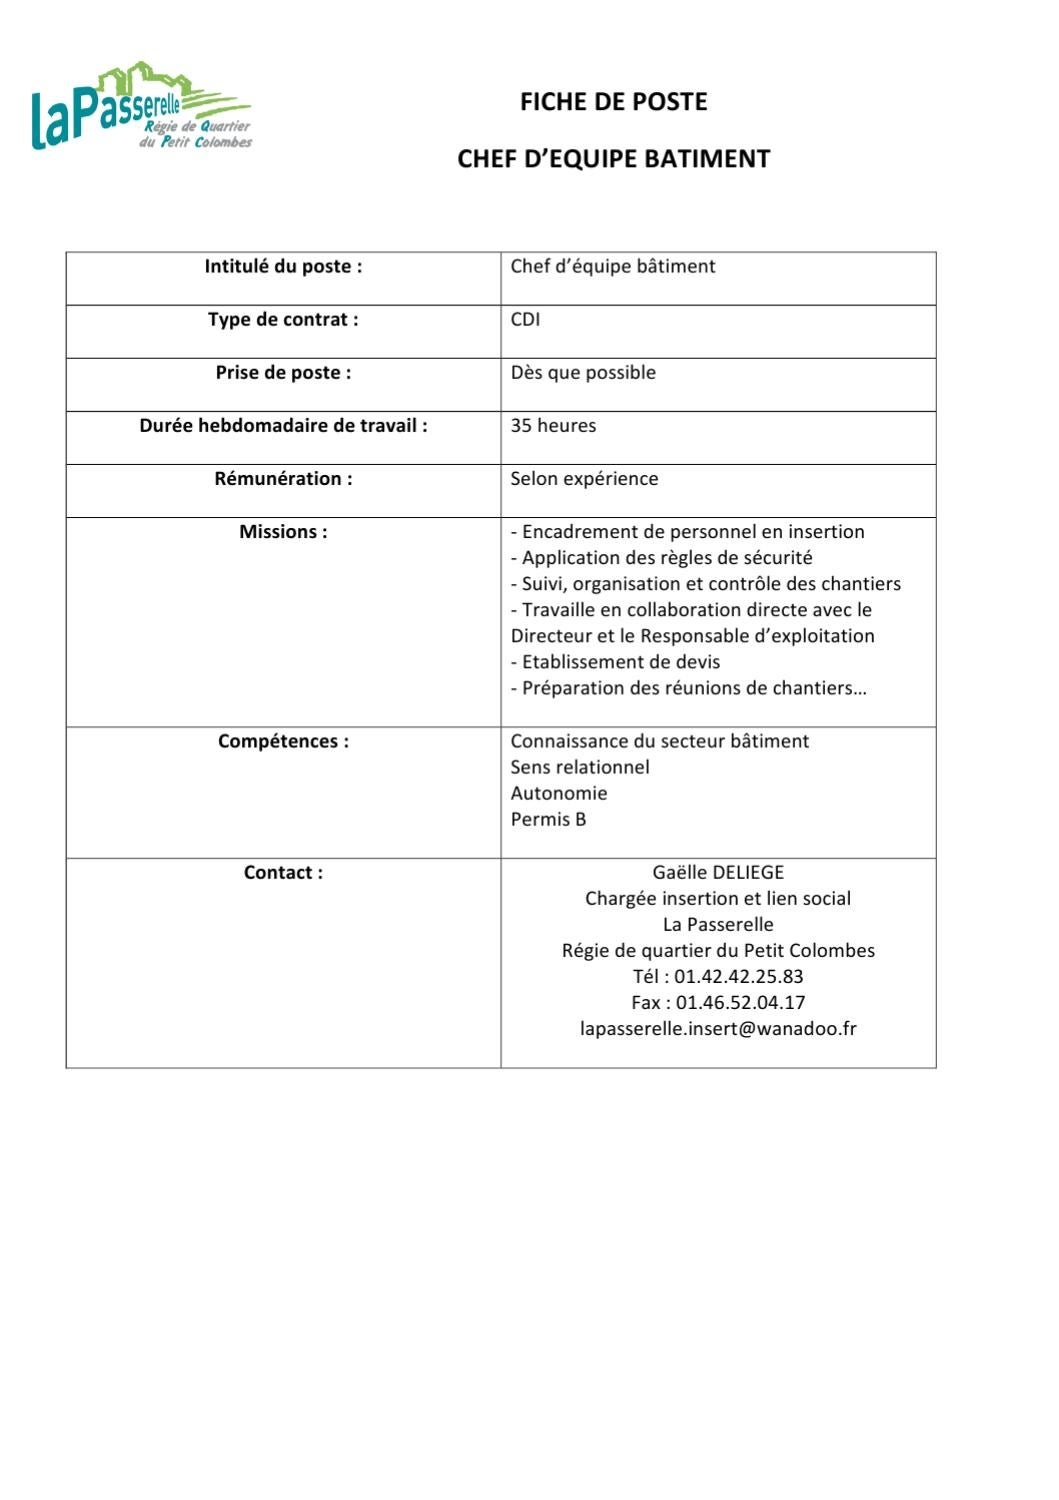 Fiche de poste by sonia rdq issuu for Application suivi de chantier